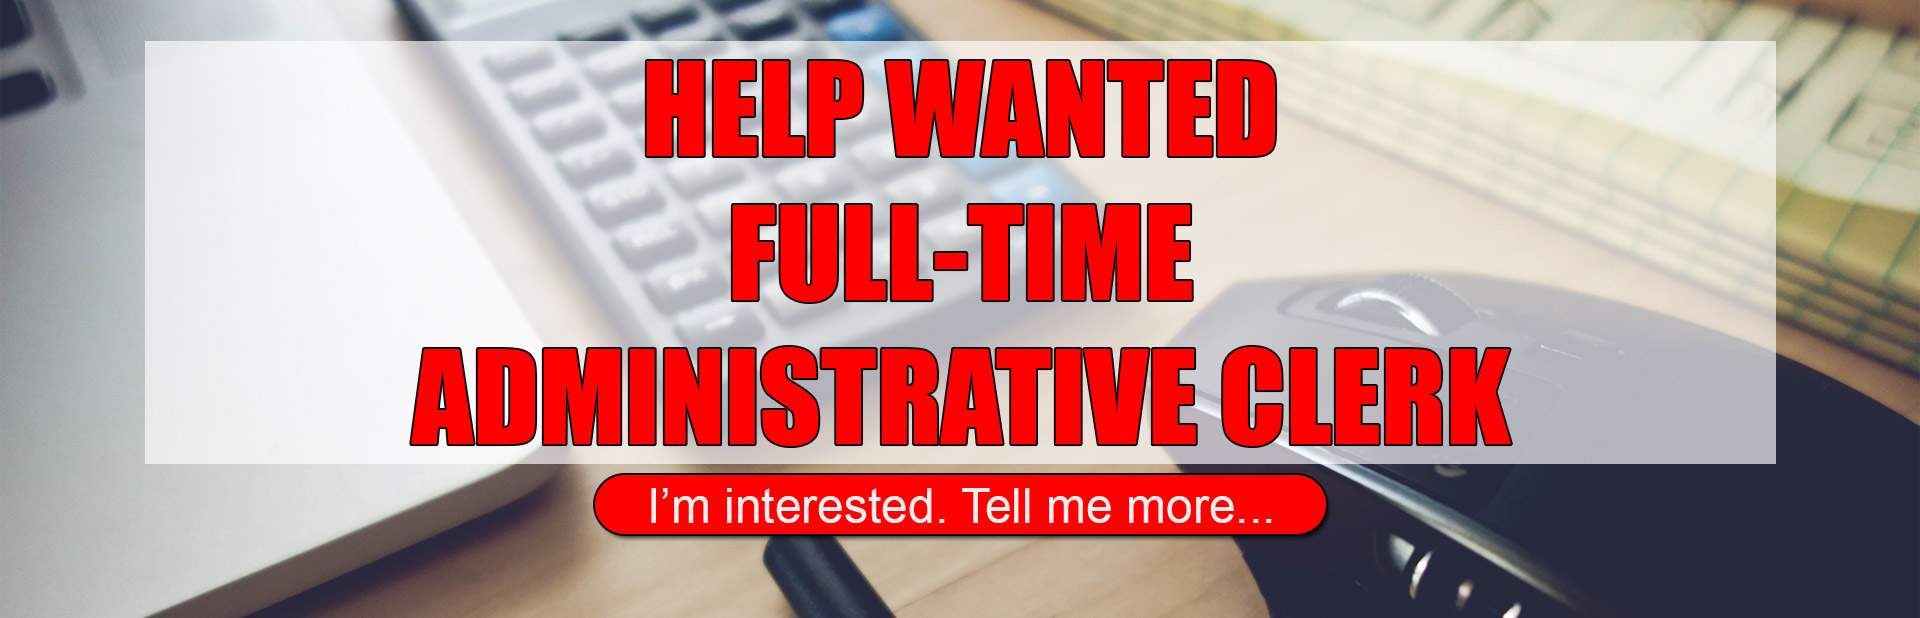 Help Wanted - Administrative Clerk